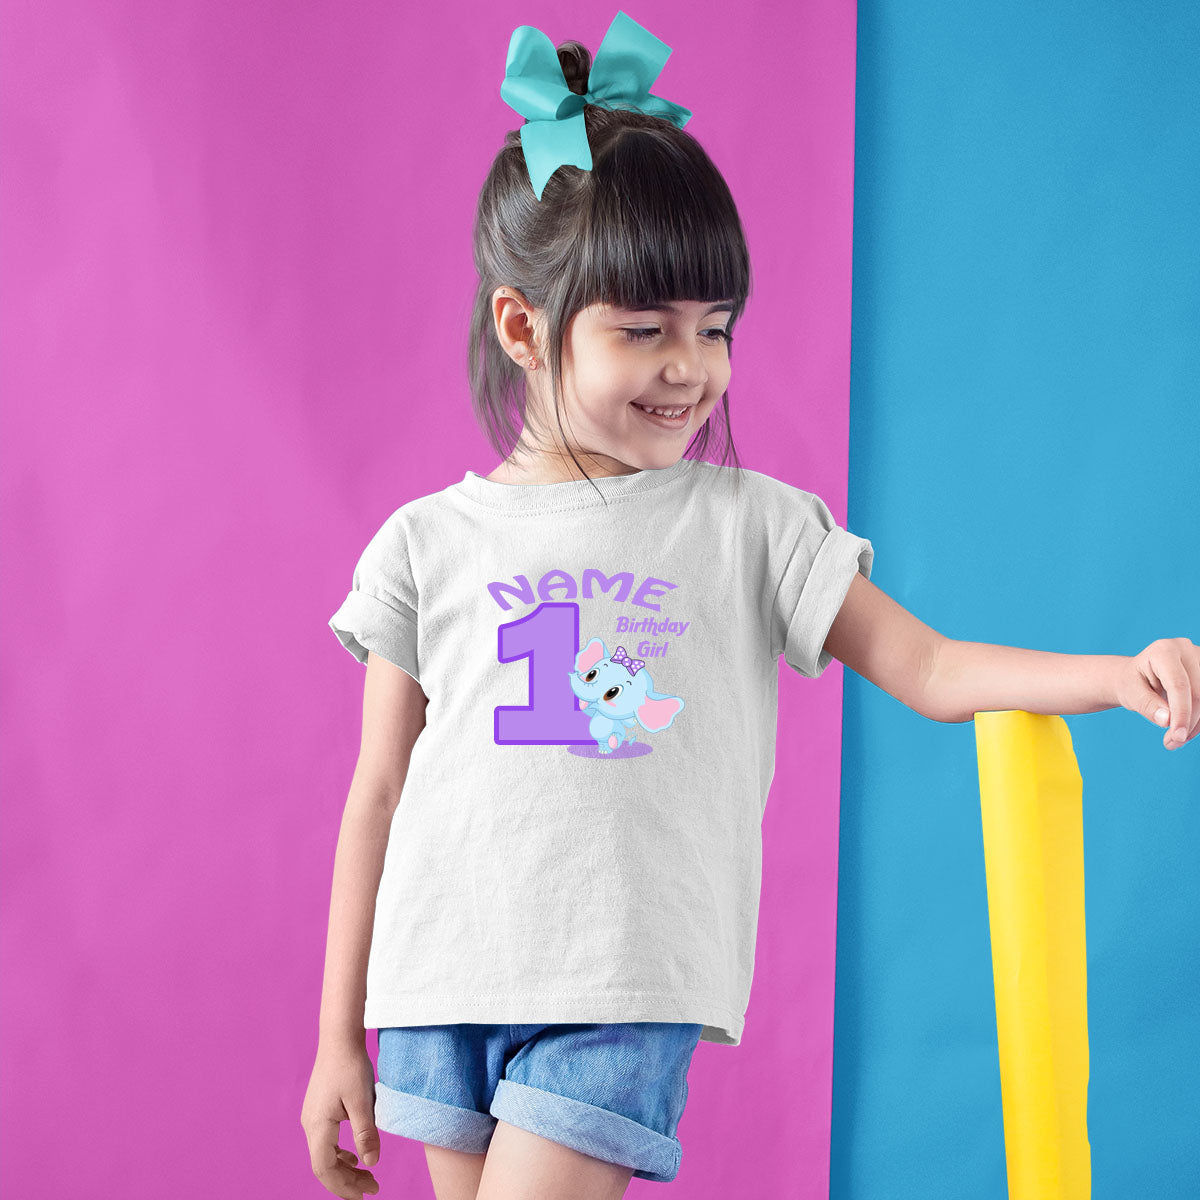 Sprinklecart Ideal 1st Birthday Wear for Your Little Princess | Customized Little Elephant T Shirt